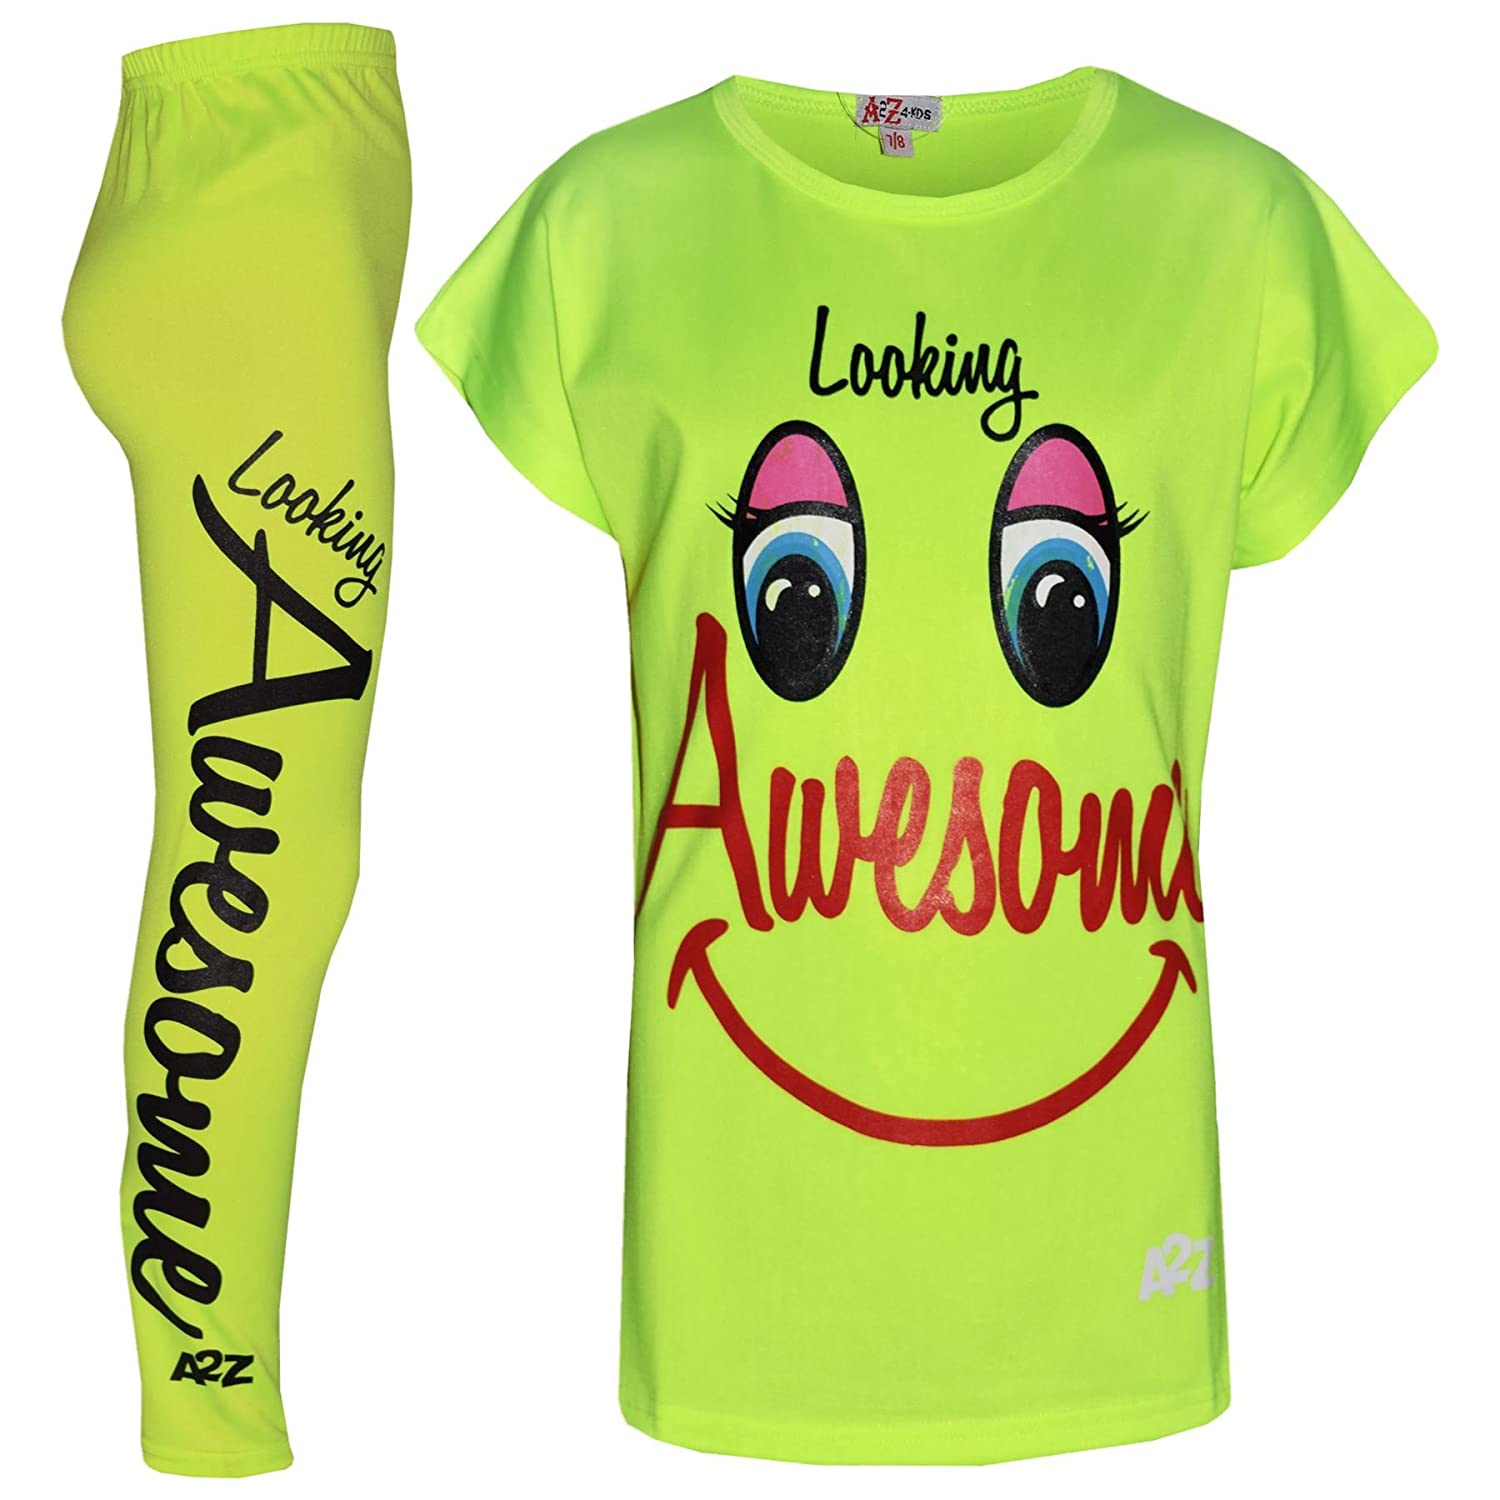 A2Z 4 Kids® Girls Top Kids Looking Awesome Print Trendy T Shirt Tops & Fashion Legging Set Age 5 6 7 8 9 10 11 12 13 Years